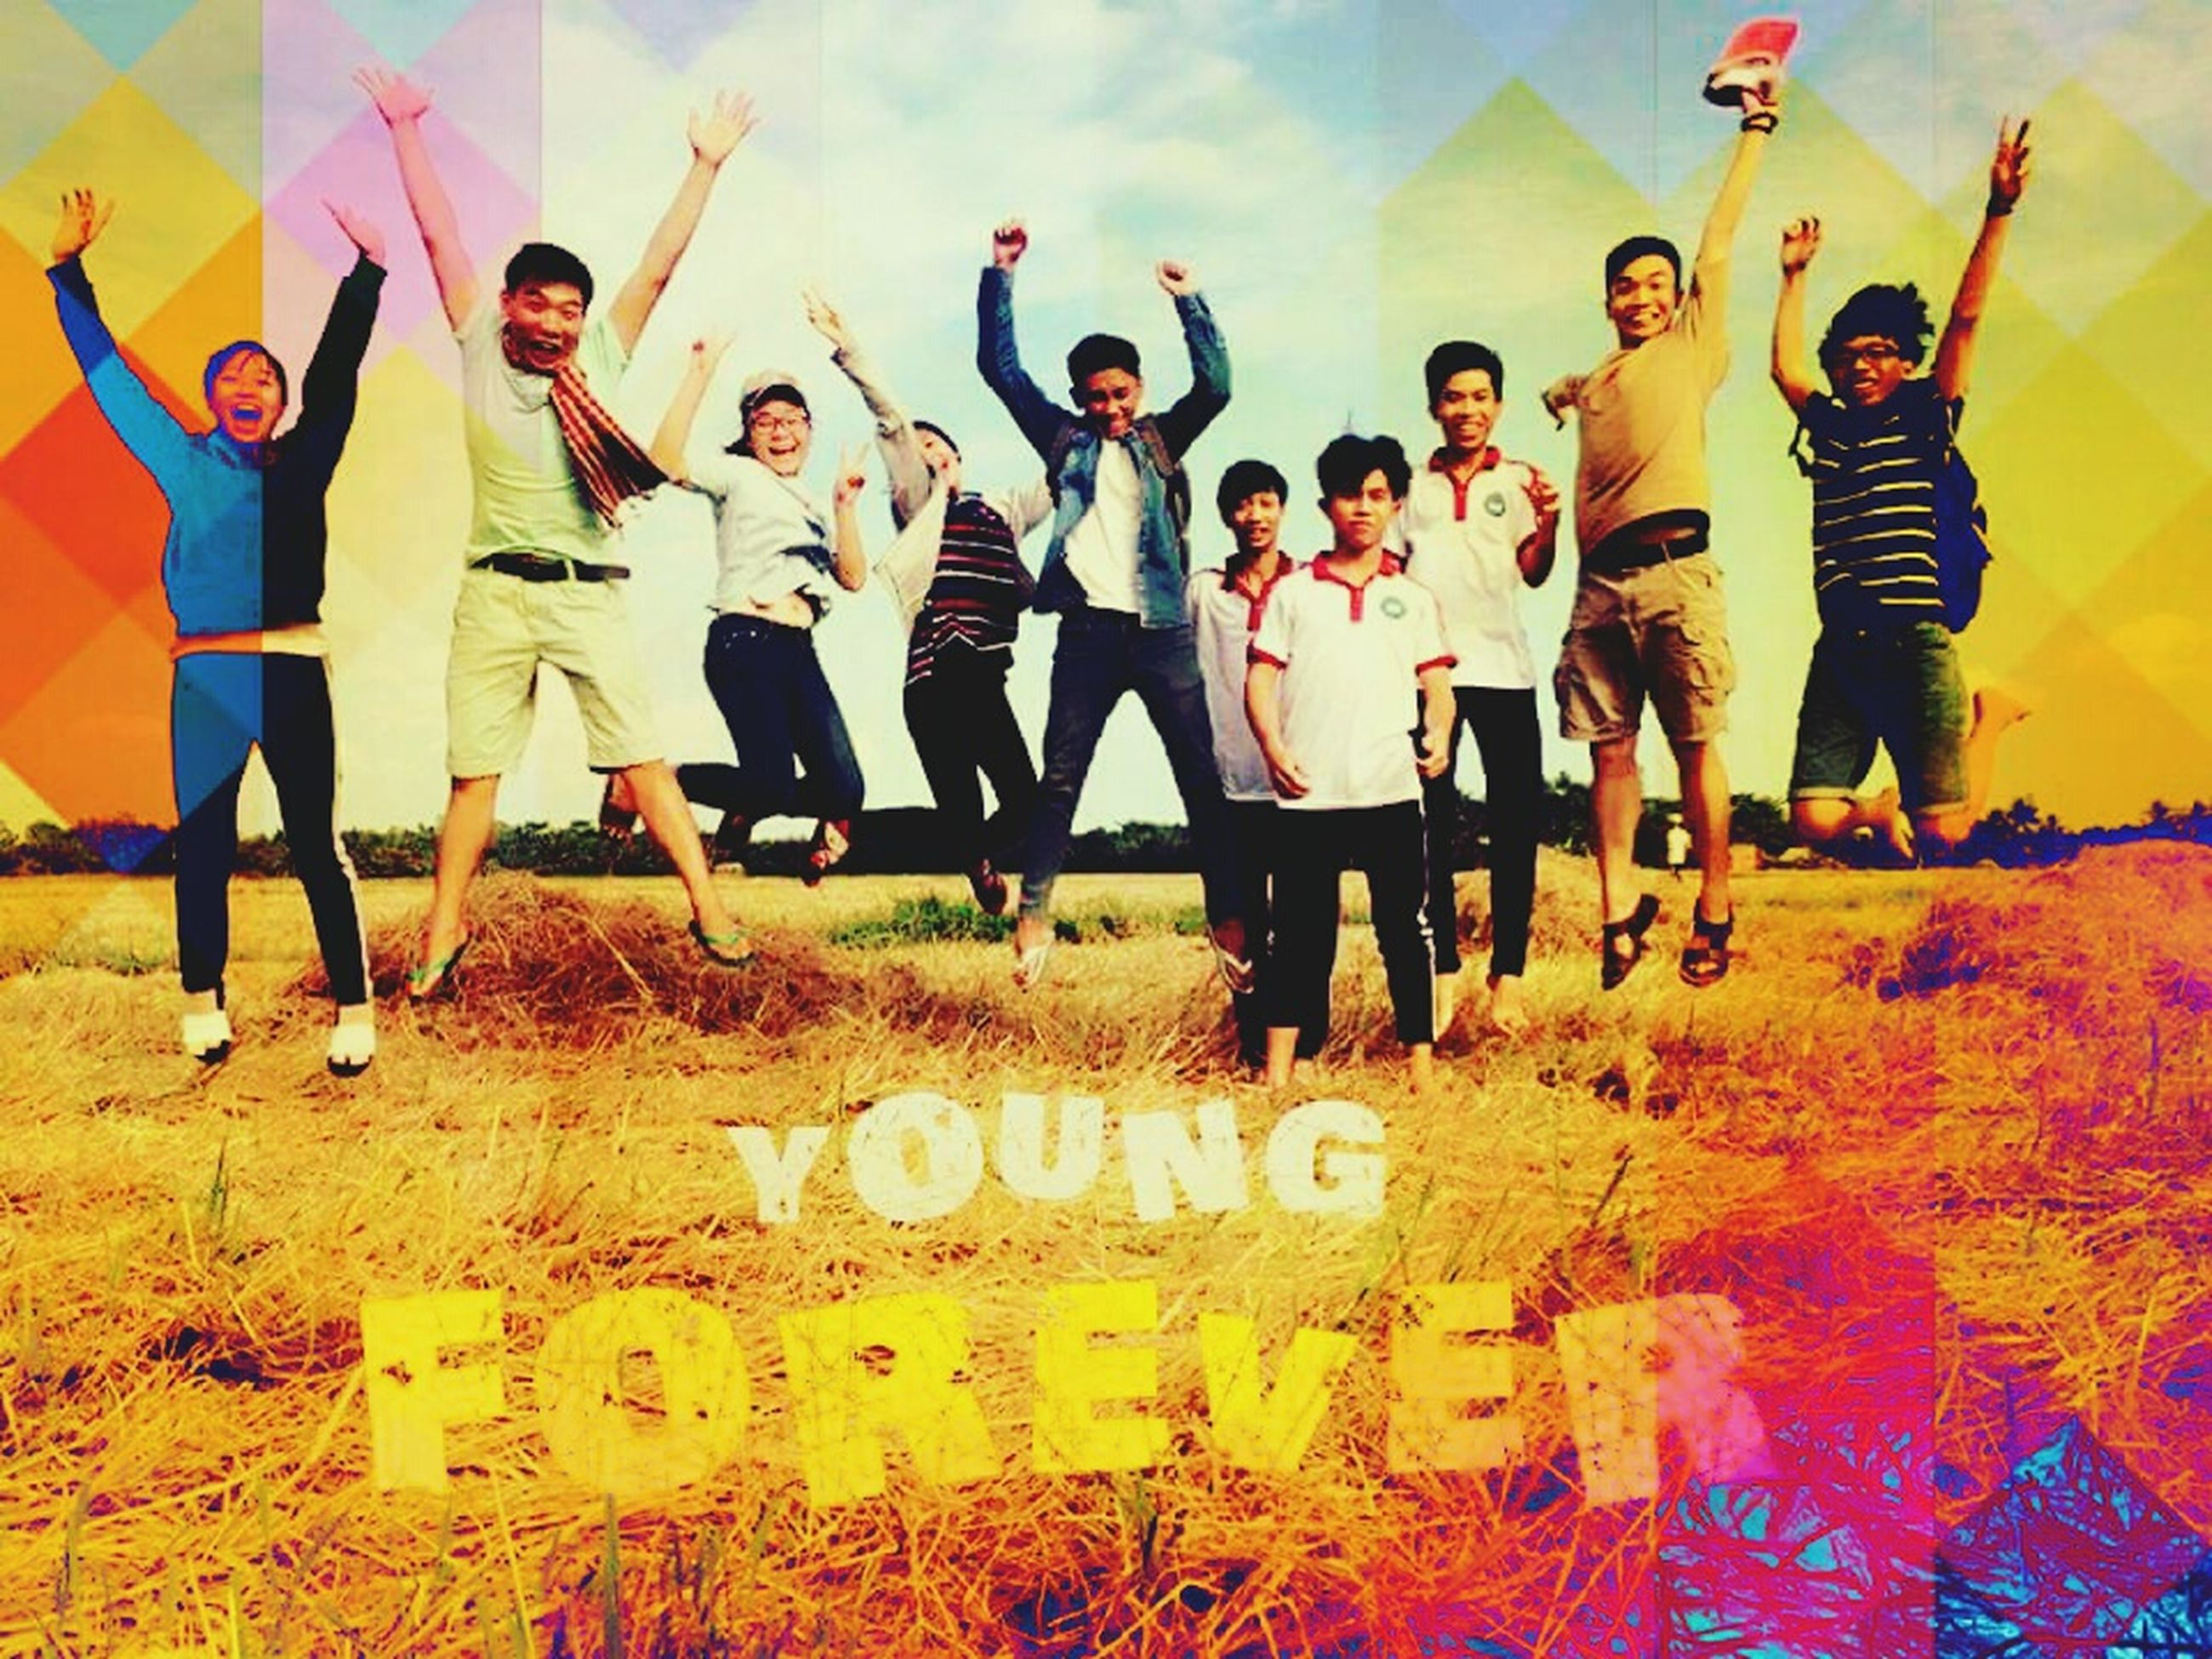 friendship, men, fun, music, large group of people, full length, happiness, arts culture and entertainment, adult, people, jumping, leisure activity, outdoors, women, cheerful, adults only, togetherness, young adult, motion, young women, playing, musician, day, nature, sky